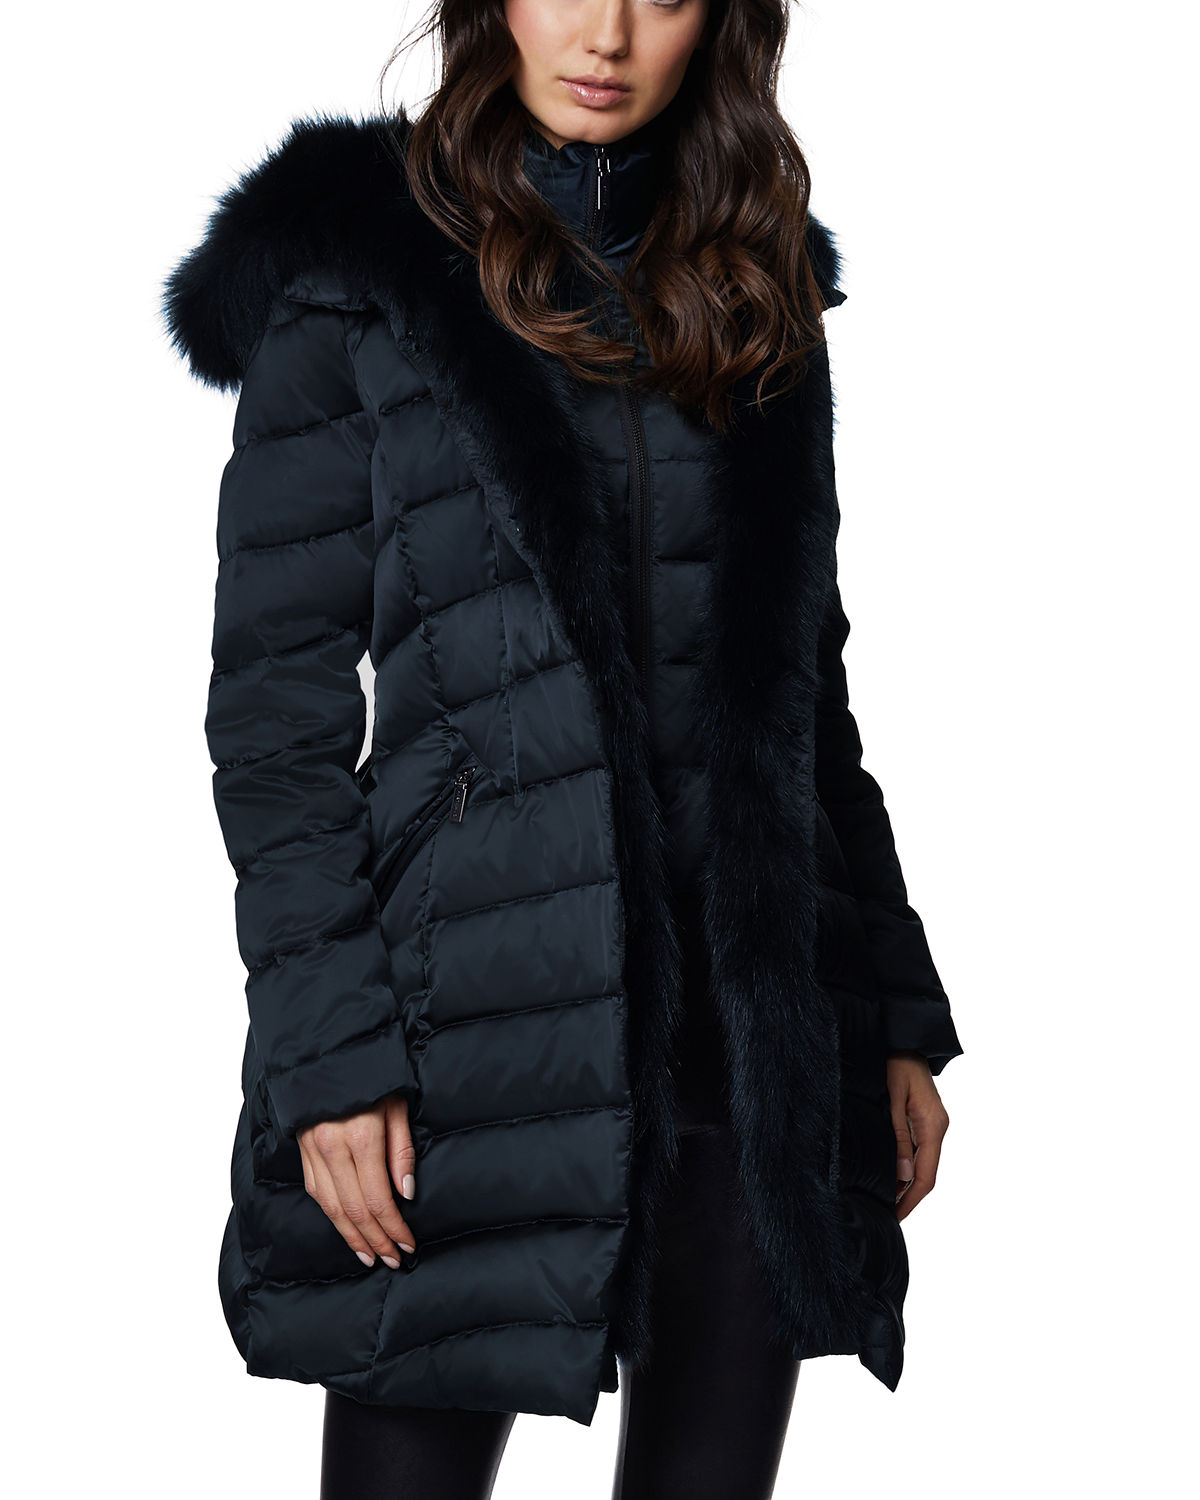 Dawn Levy JET SETTER FOX FUR-TRIM FITTED PUFFER JACKET